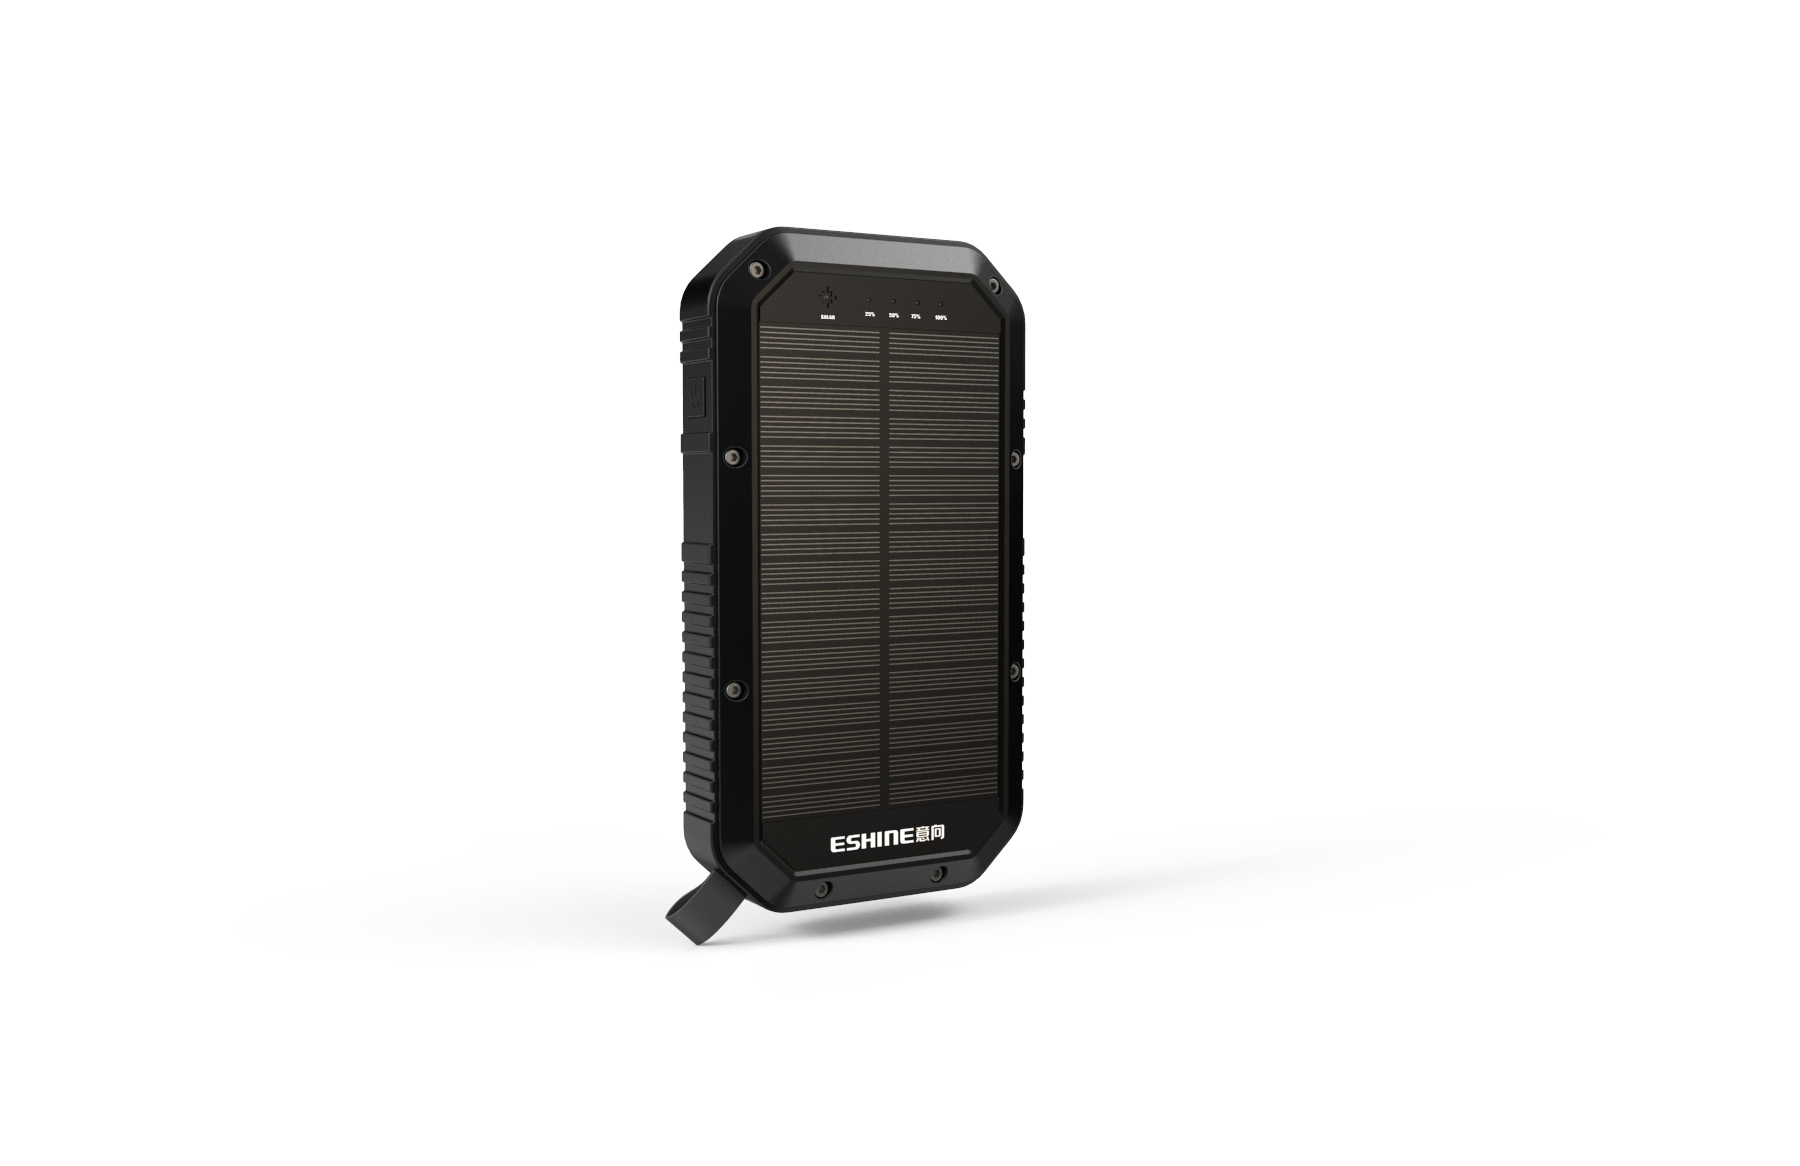 ES-982 Solar Power Bank 20000mAh